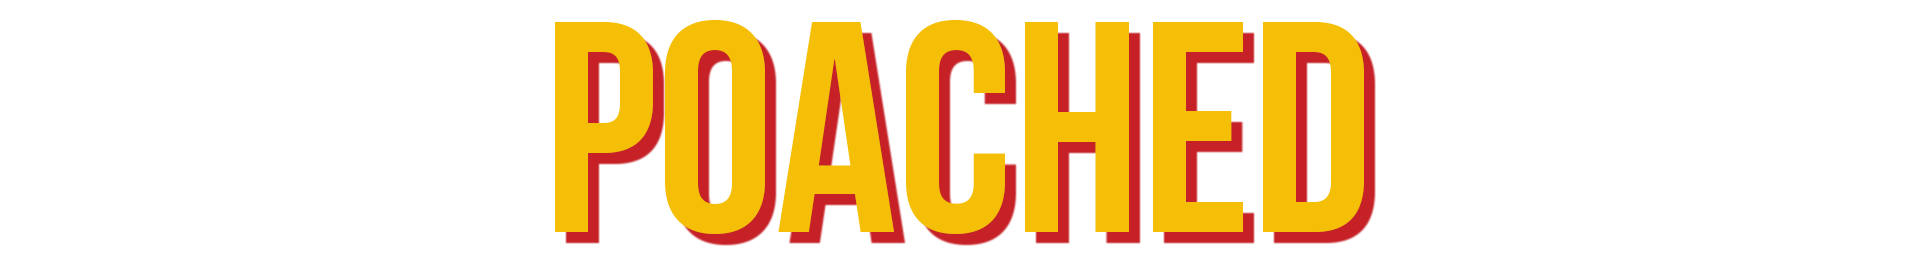 POACHED Yellow Red copy2.png